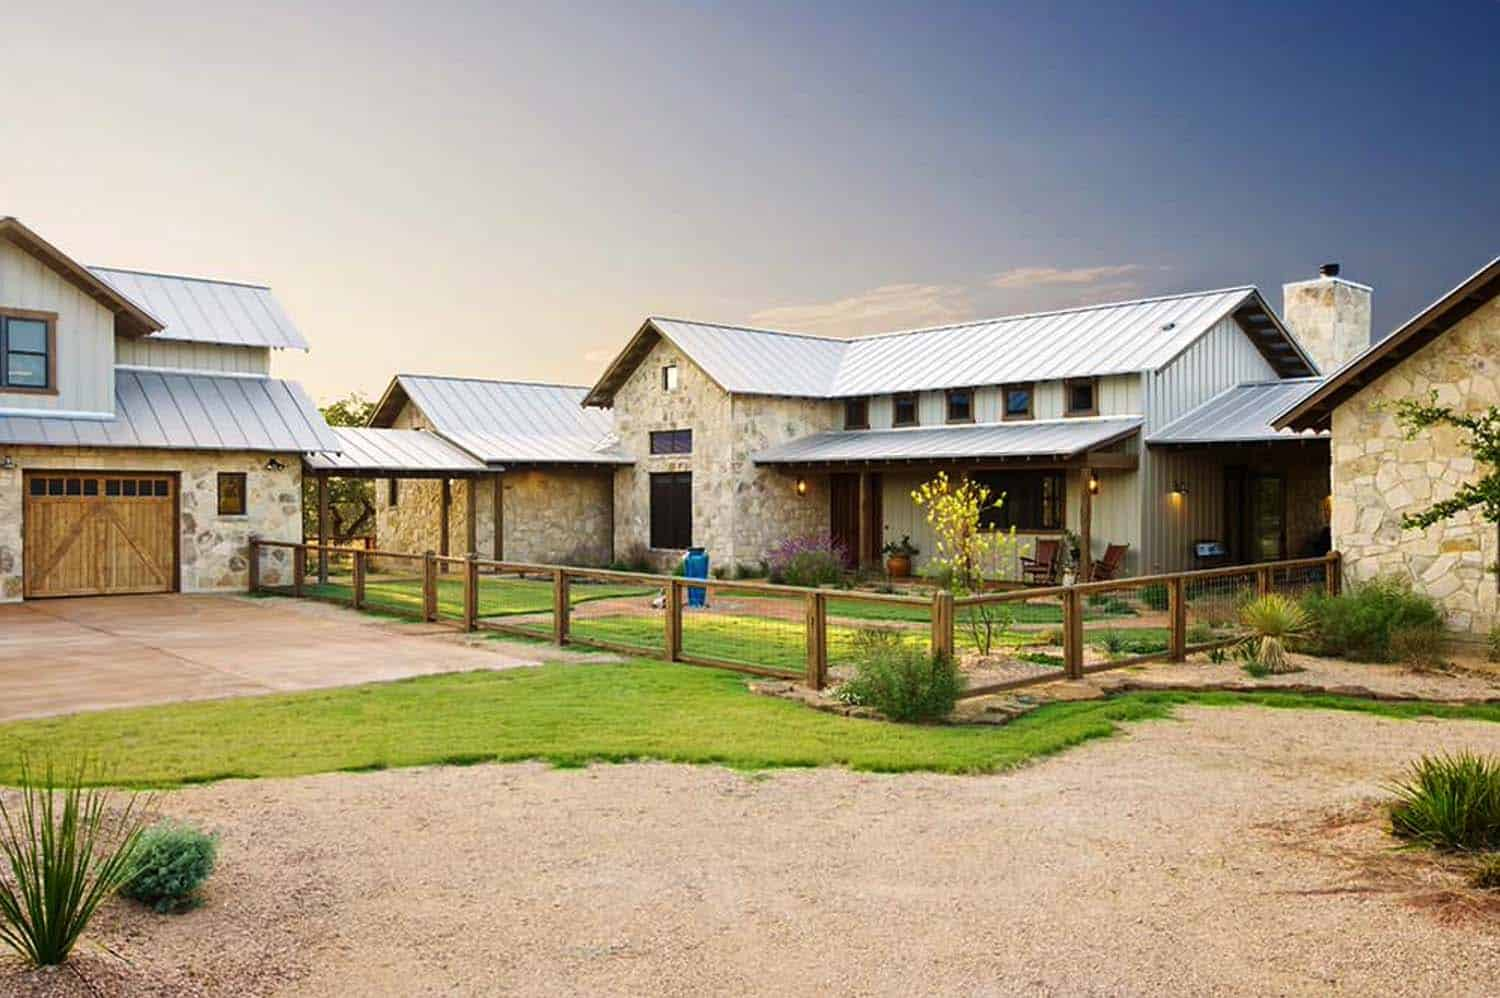 Rustic ranch house designed for family gatherings in texas for Barn style house designs